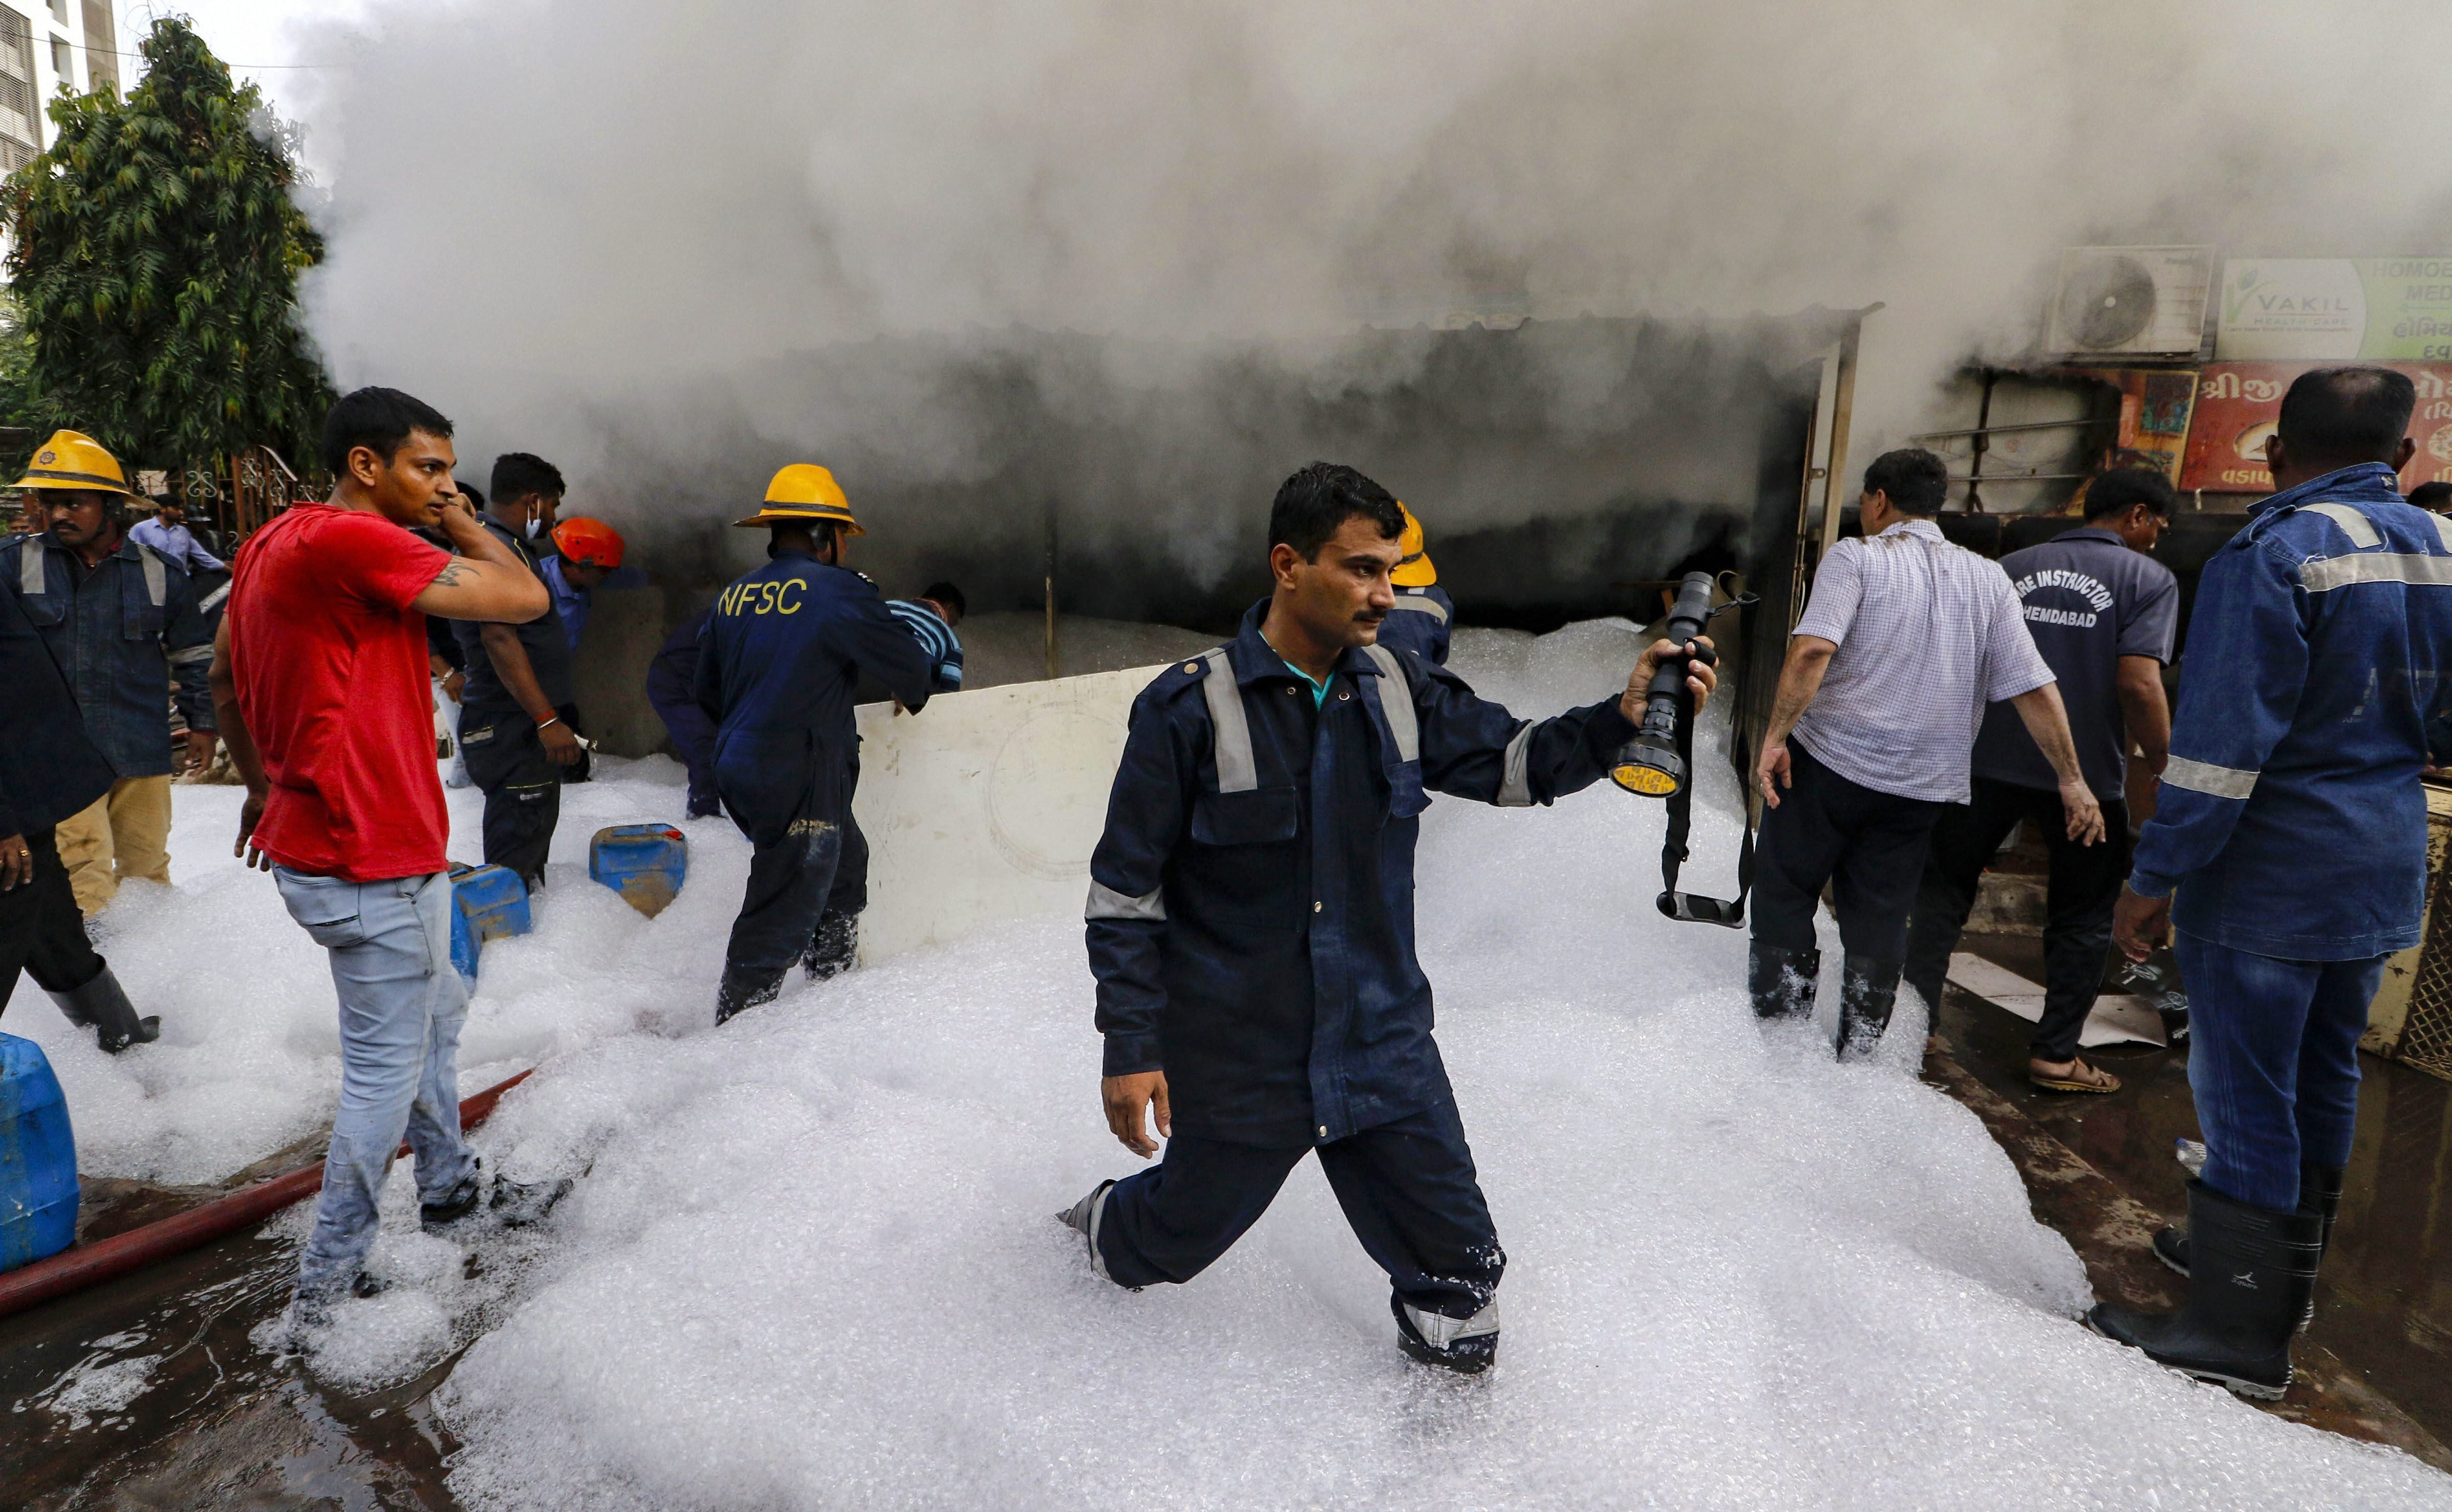 Firefighters try to control a fire which broke out in a tyre showroom, in Ahmedabad - PTI